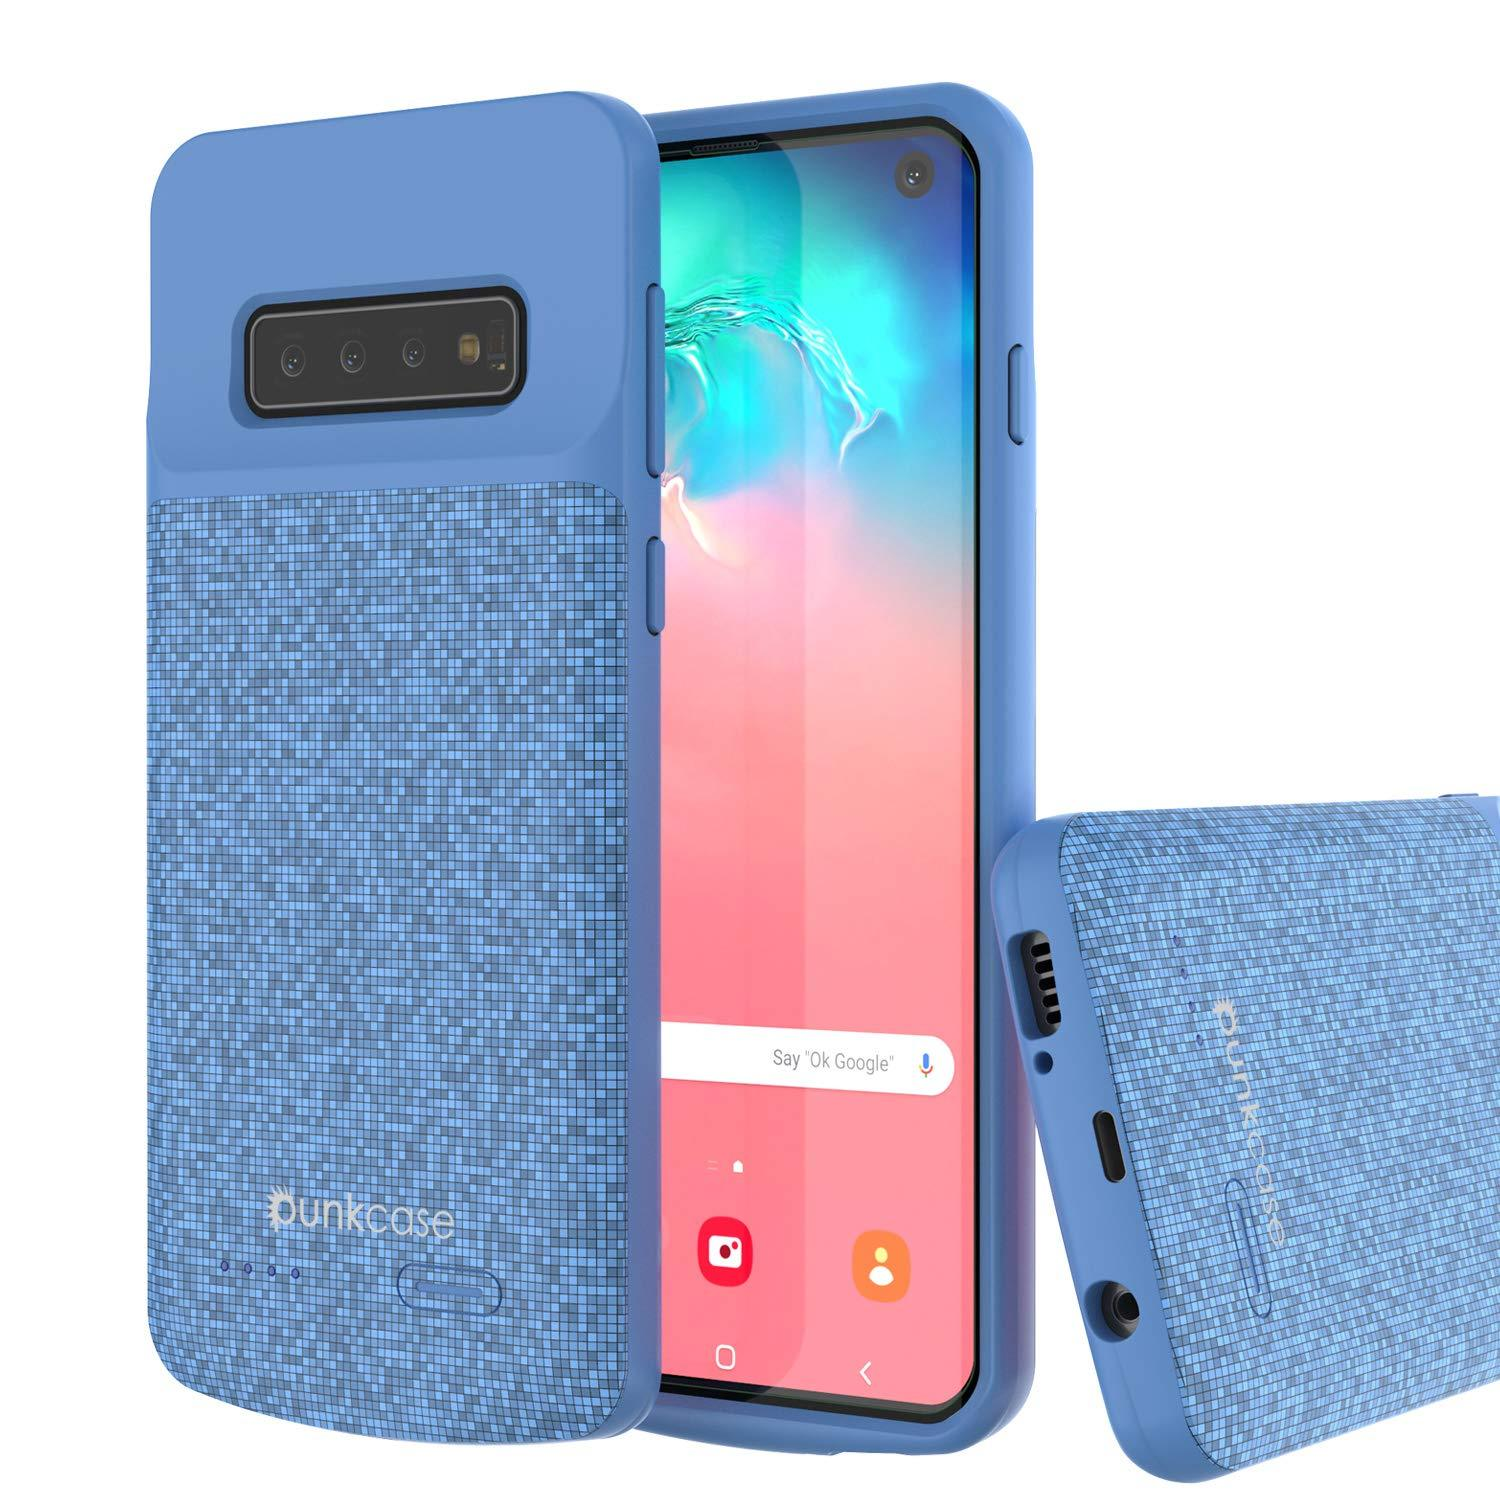 PunkJuice S10 Battery Case Blue - Fast Charging Power Juice Bank with 4700mAh